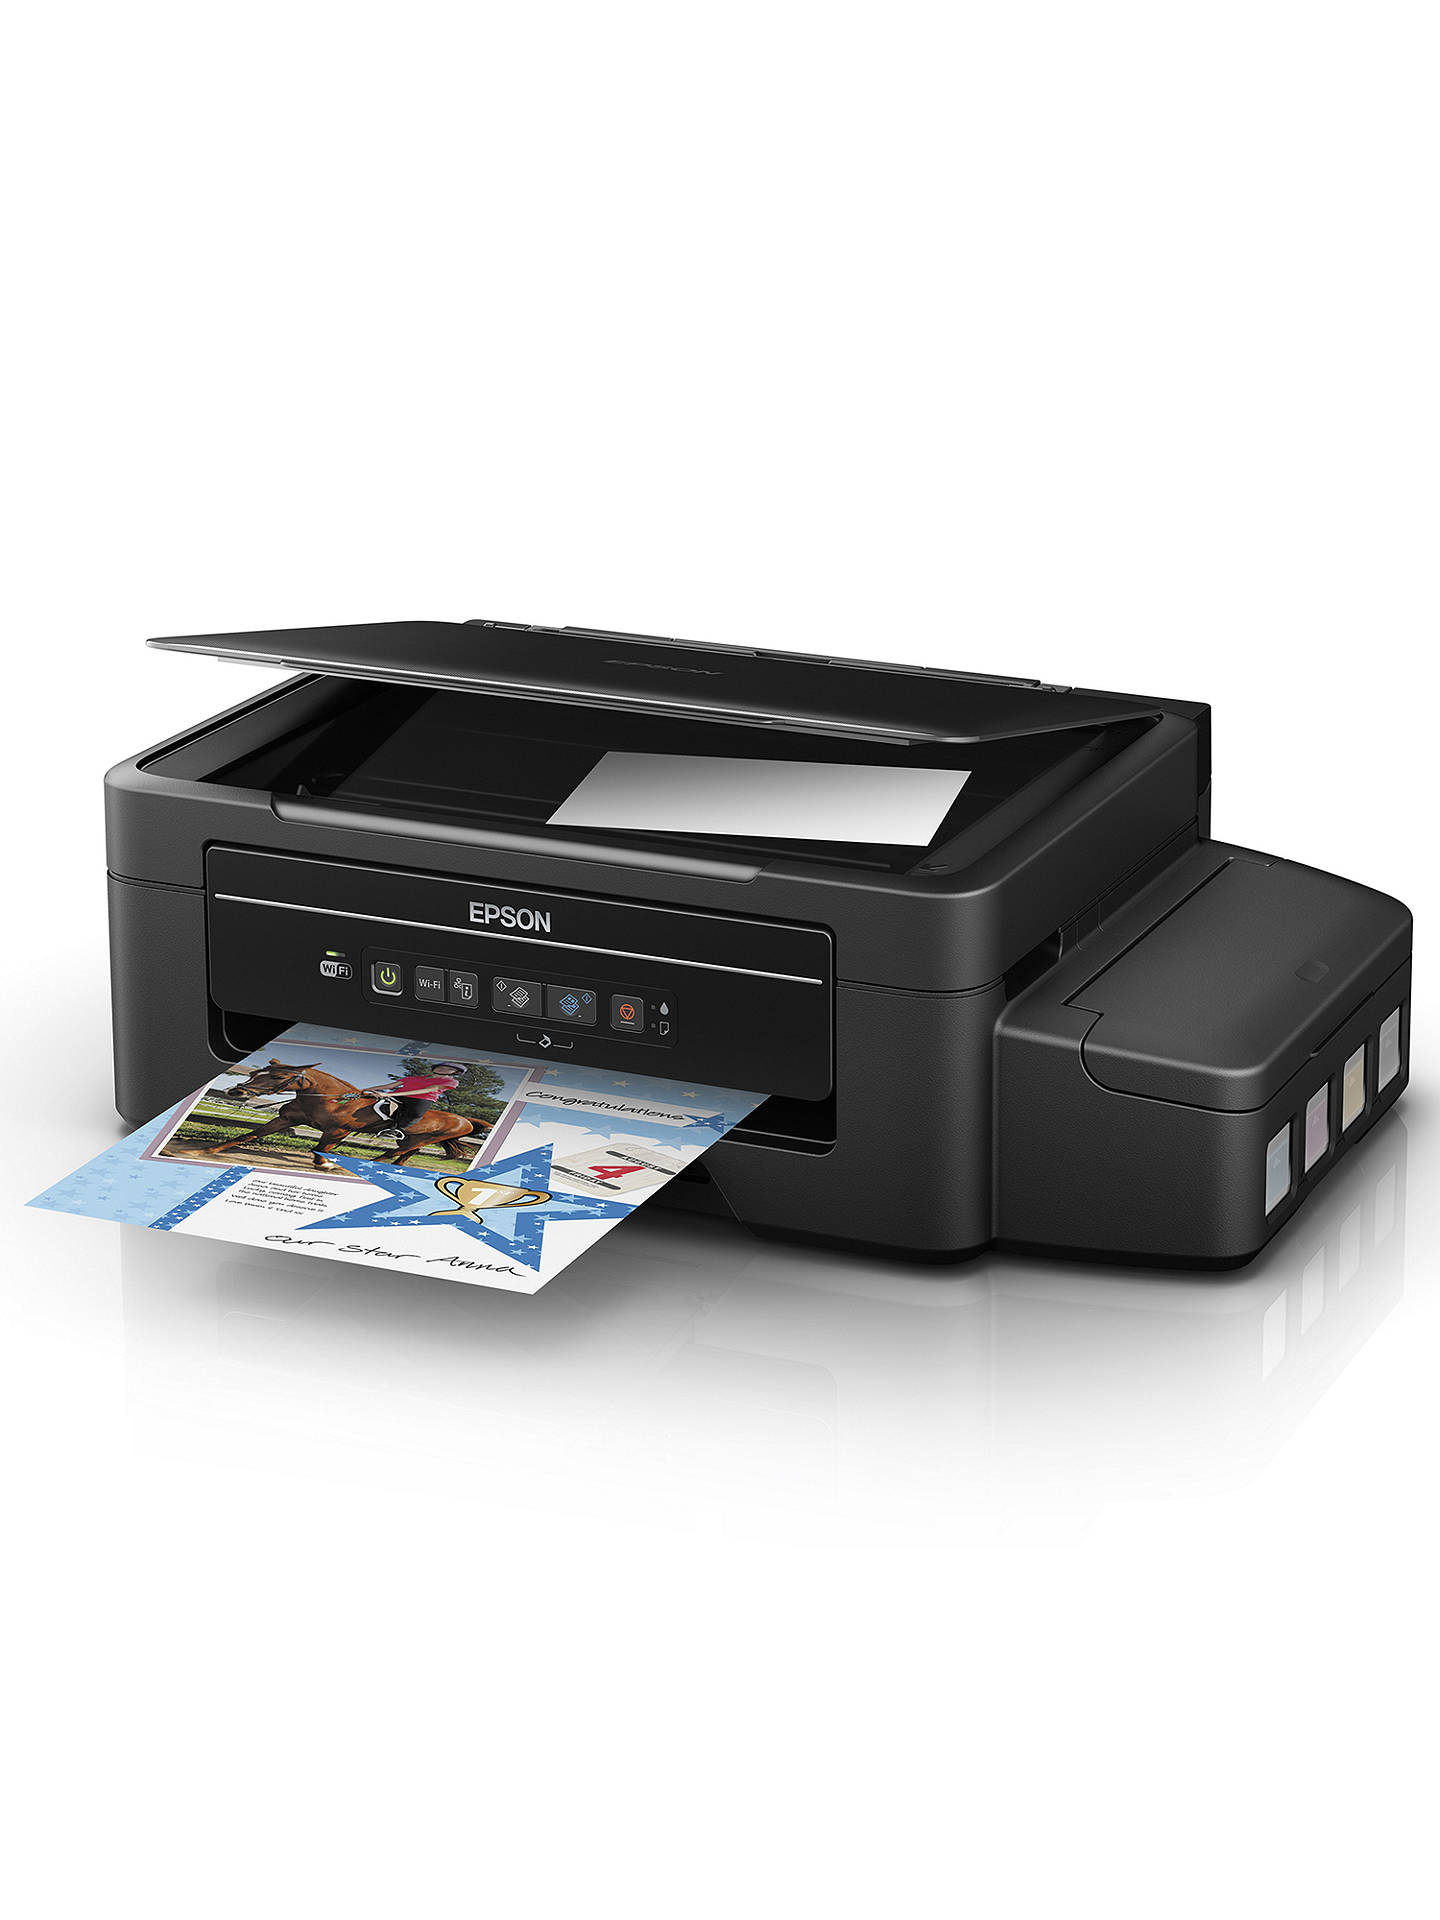 Buy Epson EcoTank ET-2500 Three-In-One Wi-Fi Printer with High Capacity Integrated Ink Tank System & 2 Years Ink Supply Included Online at johnlewis.com